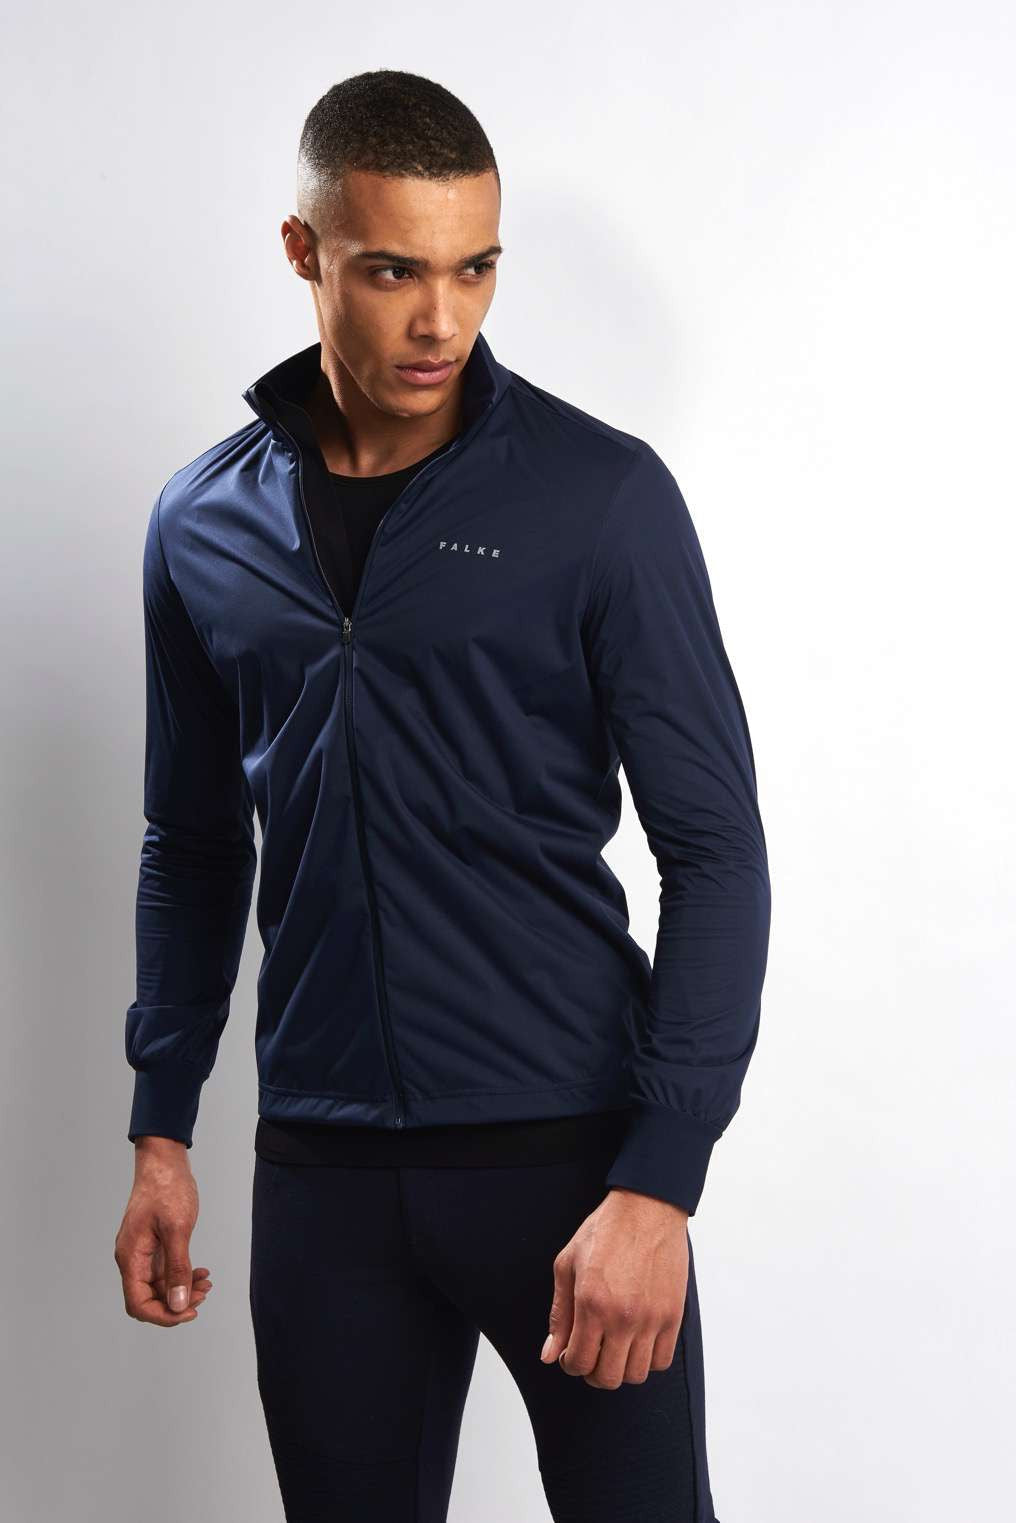 Falke RU Windbreaker Jacket Men's Navy image 1 - The Sports Edit